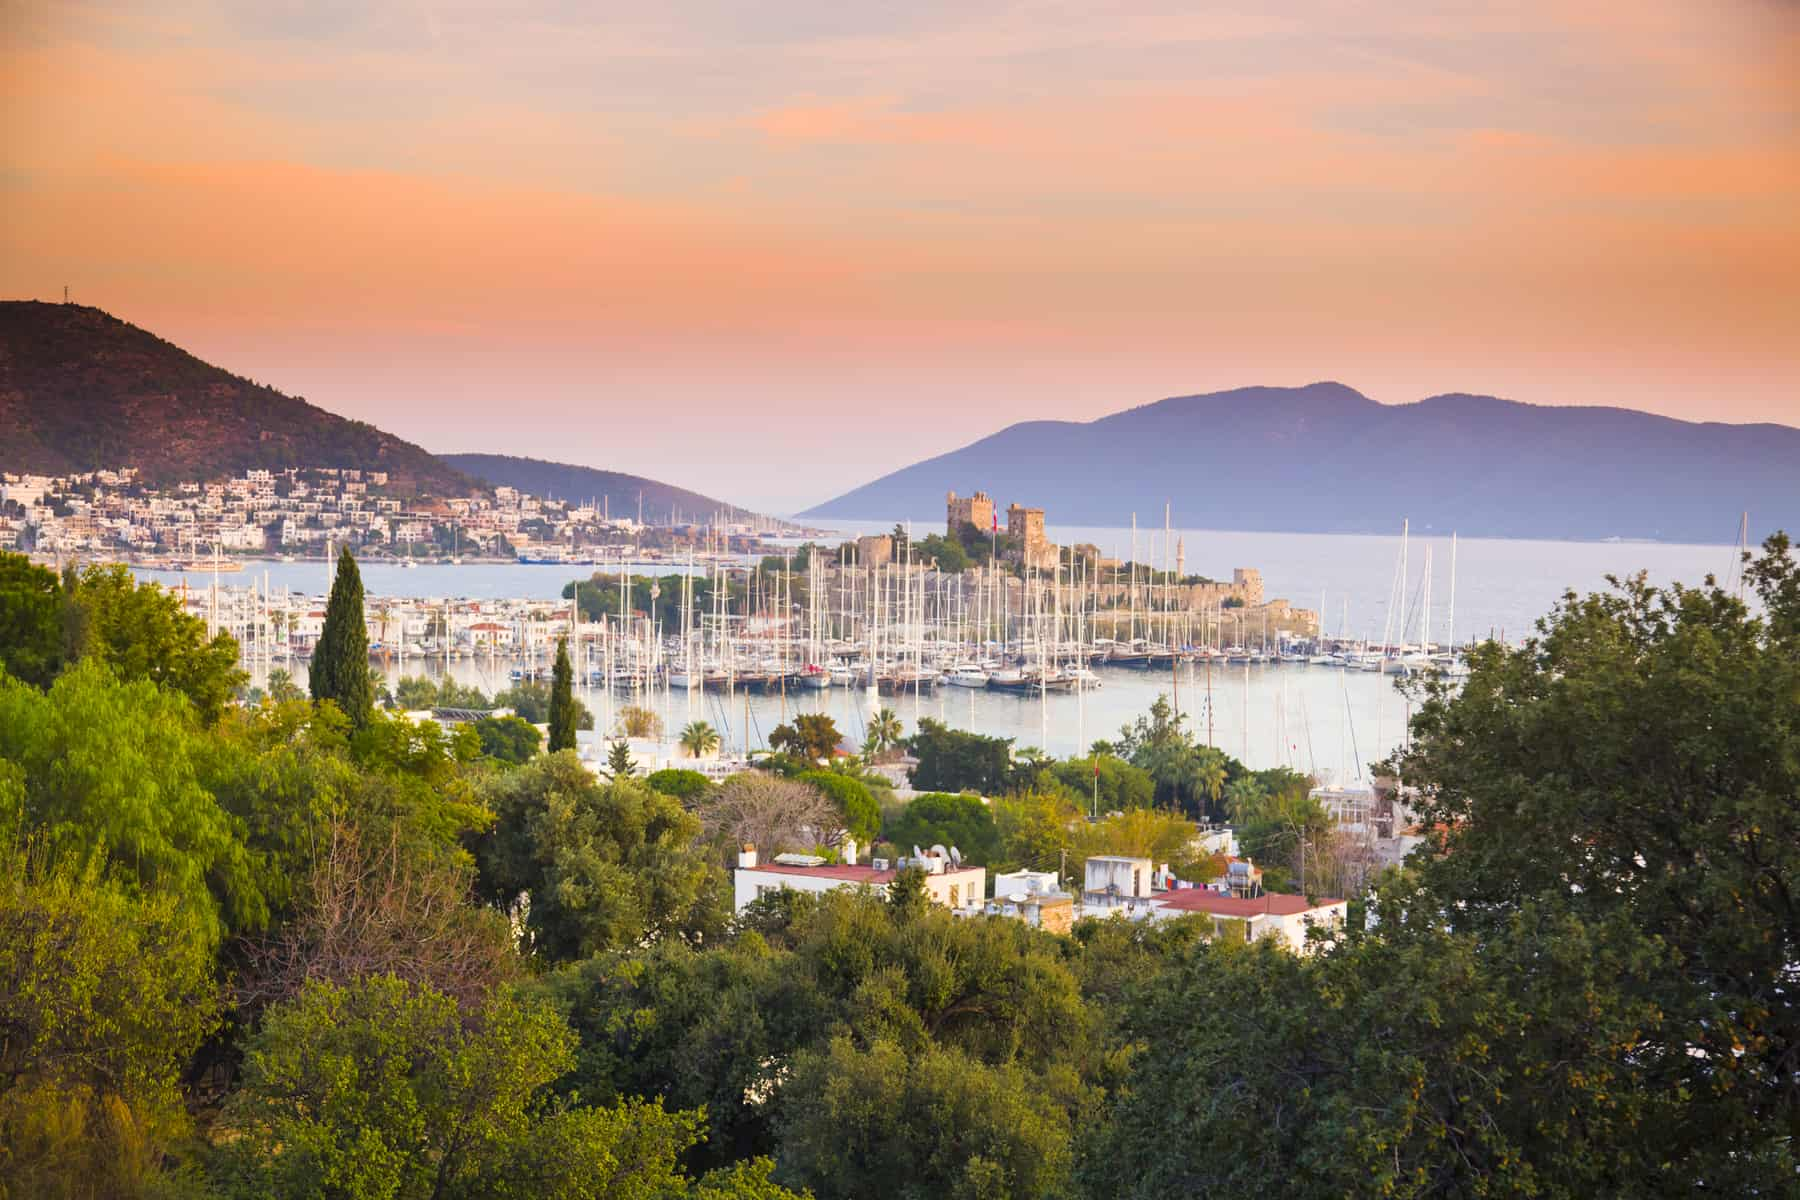 Sunset scene in Bodrum with the view of the ancient Bodrum Castle or the Castle of St Peter, Turkey